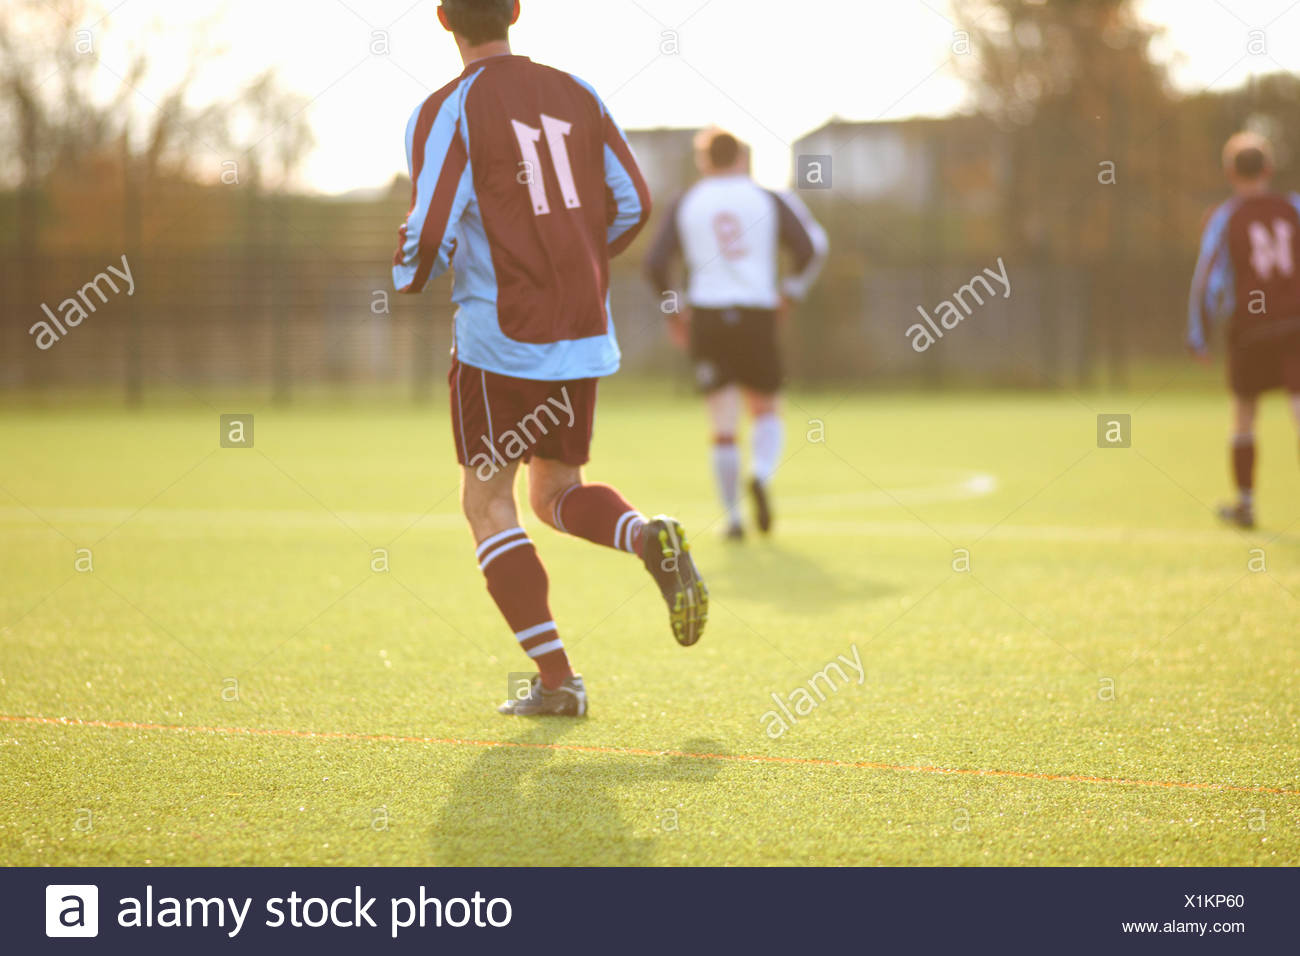 Football players during game - Stock Image